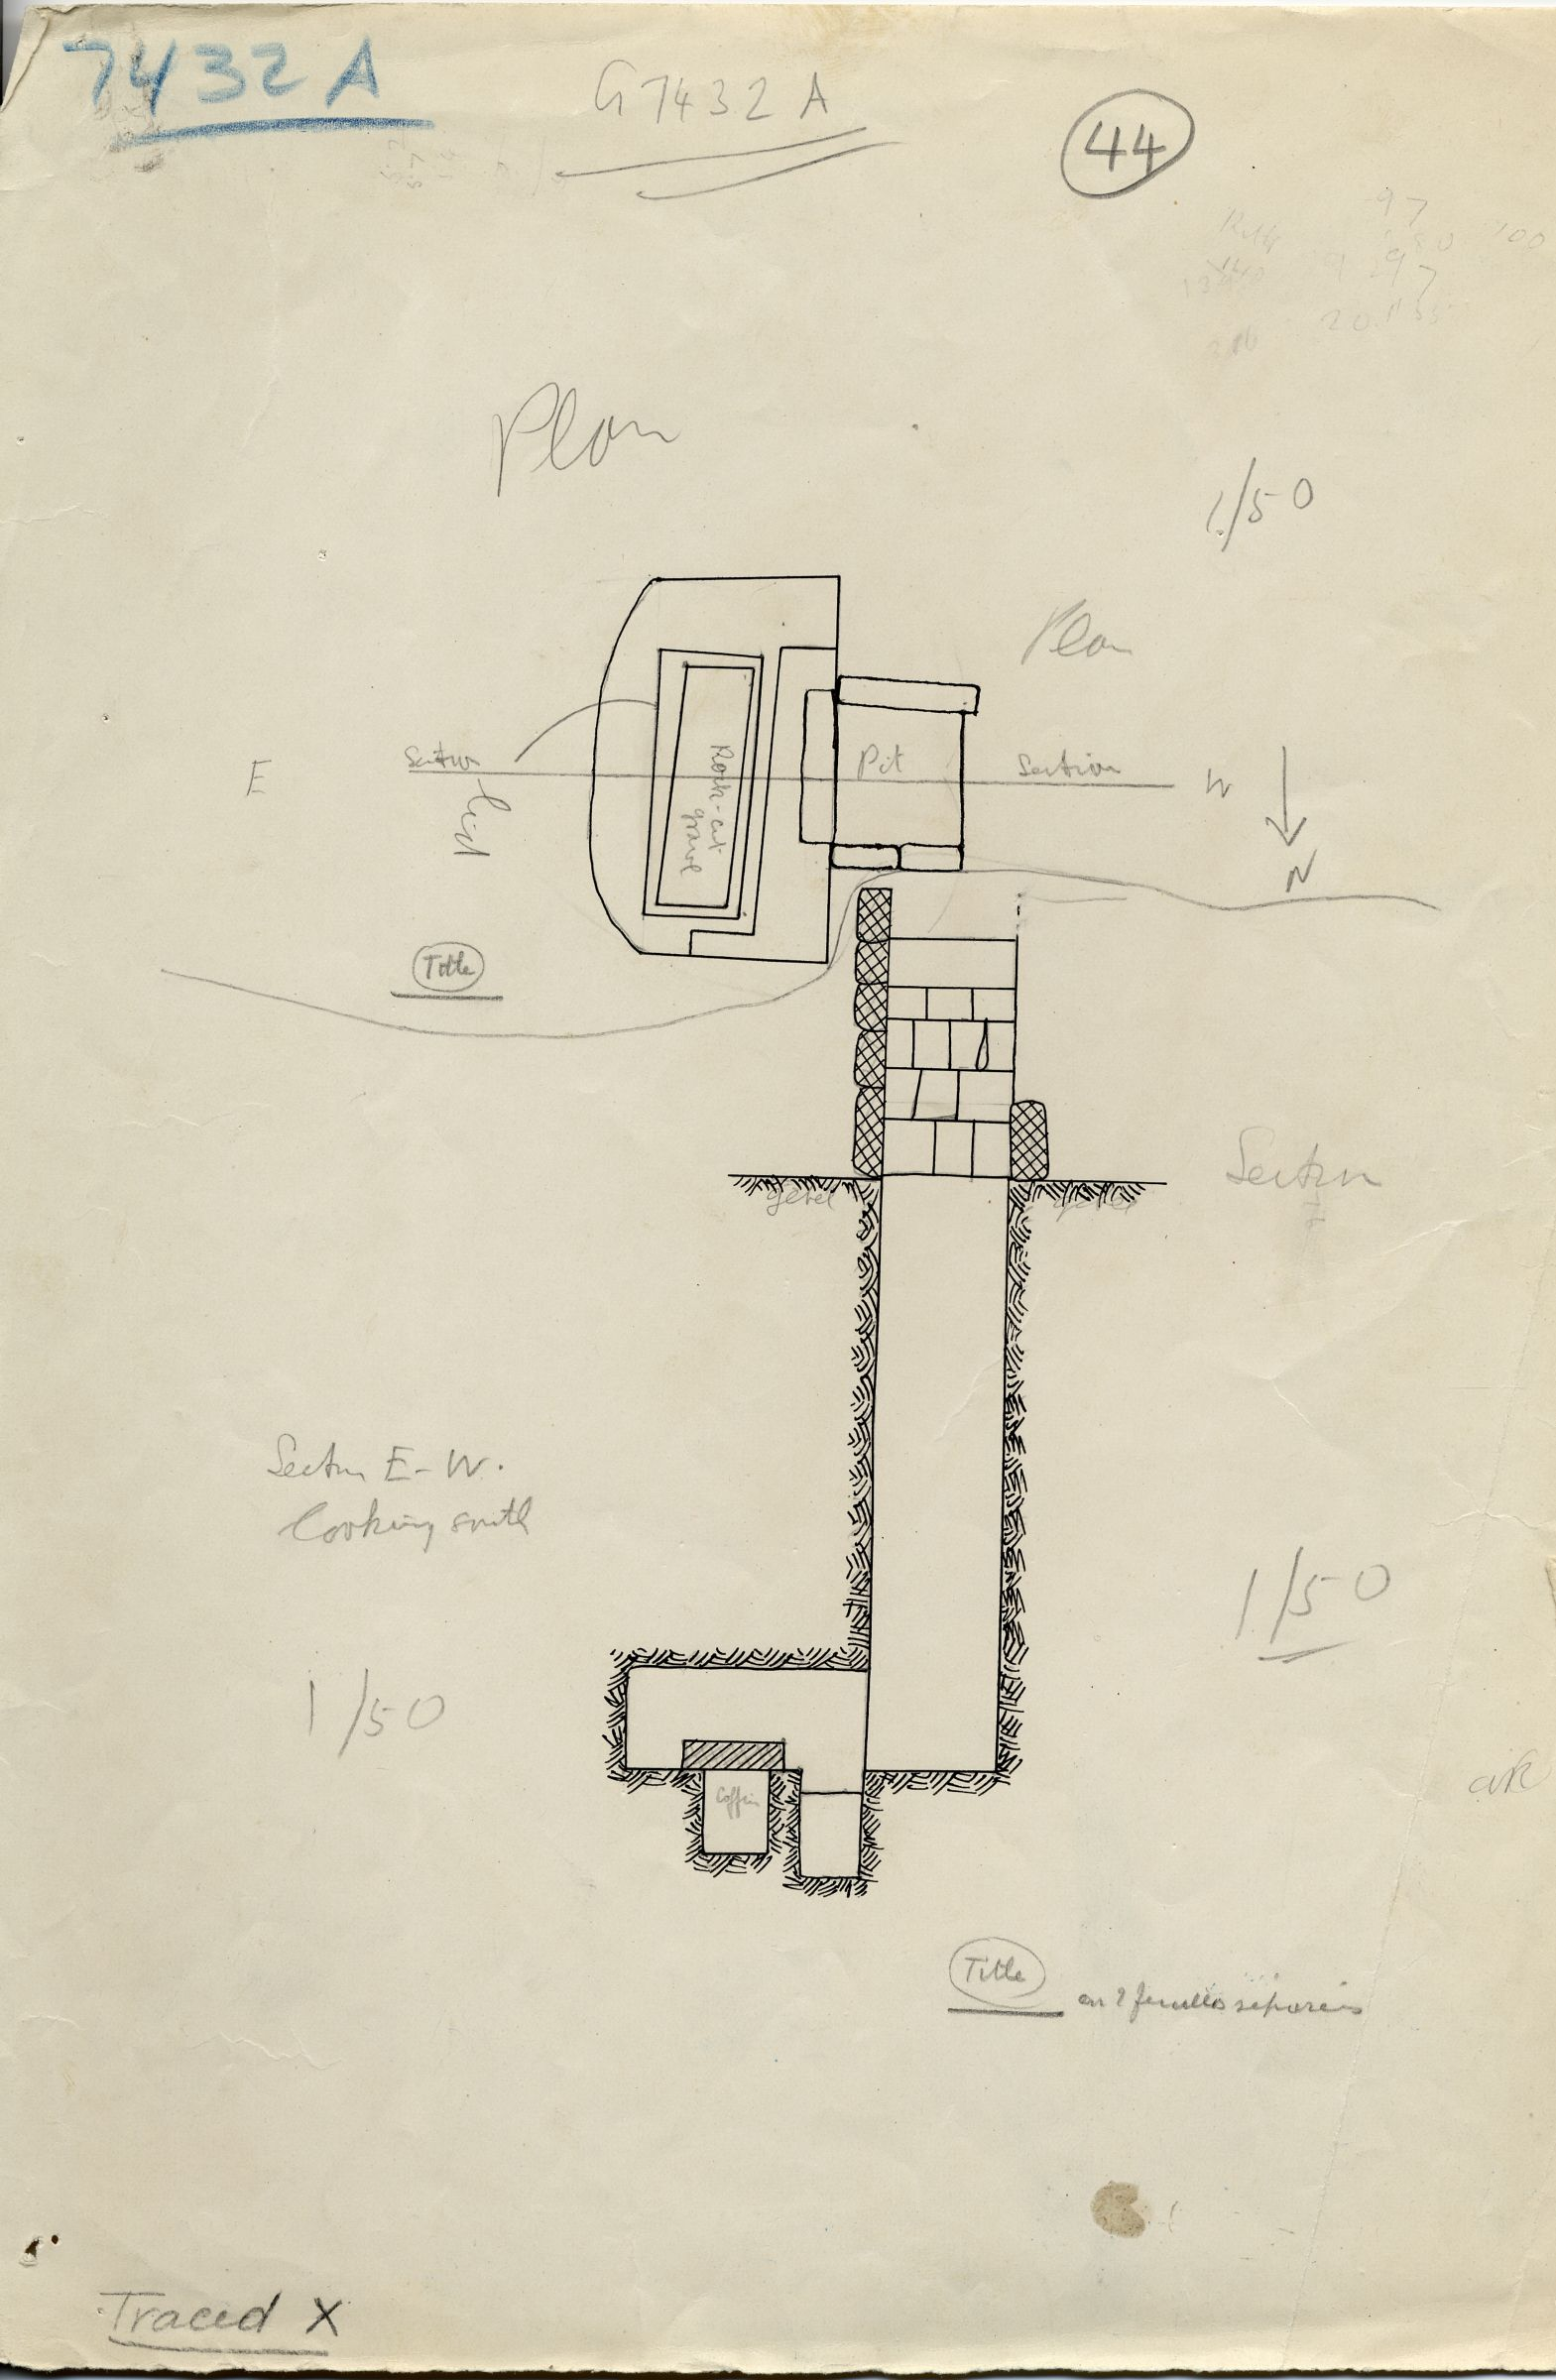 Maps and plans: G 7432, Shaft A